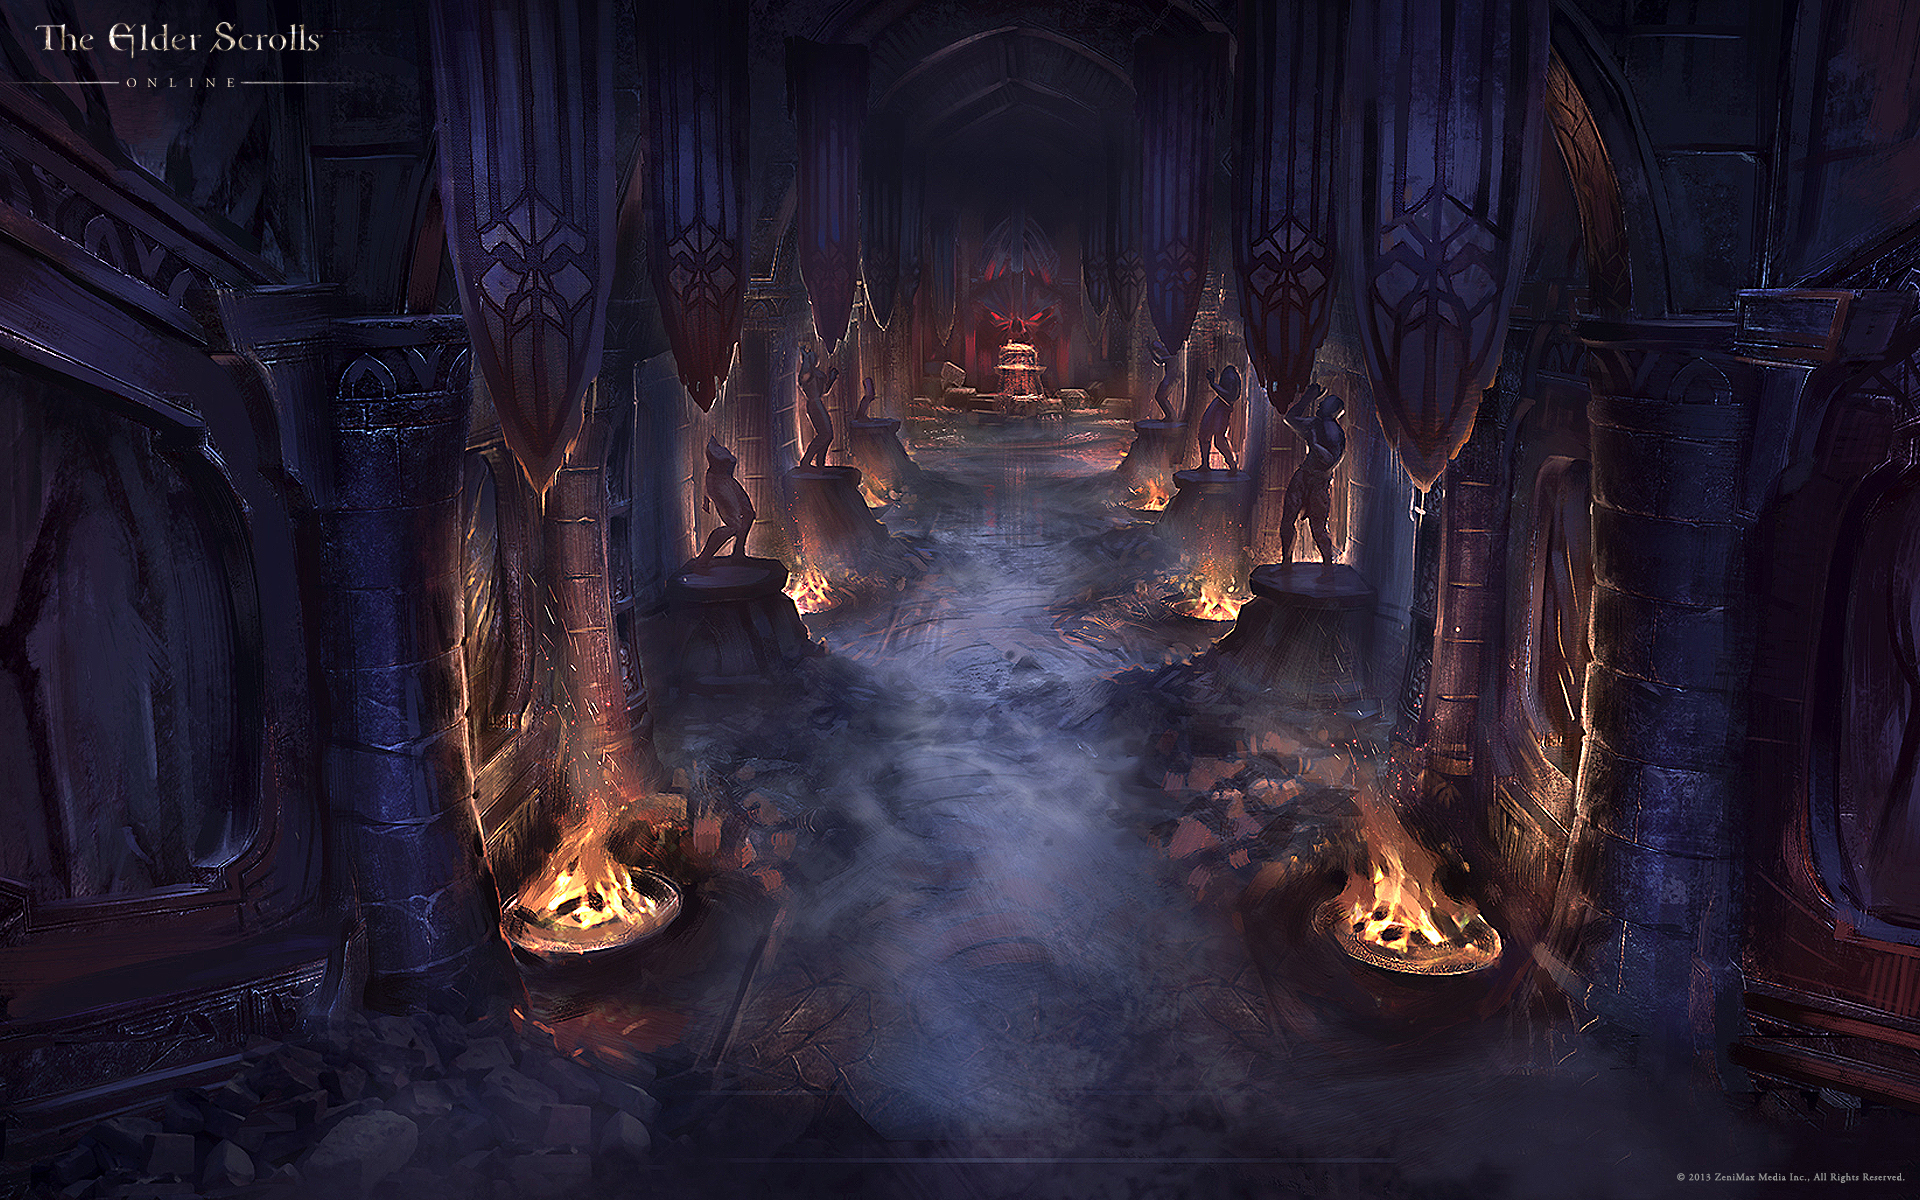 Wallpaper The Elder Scrolls Online: Vaults of Madness